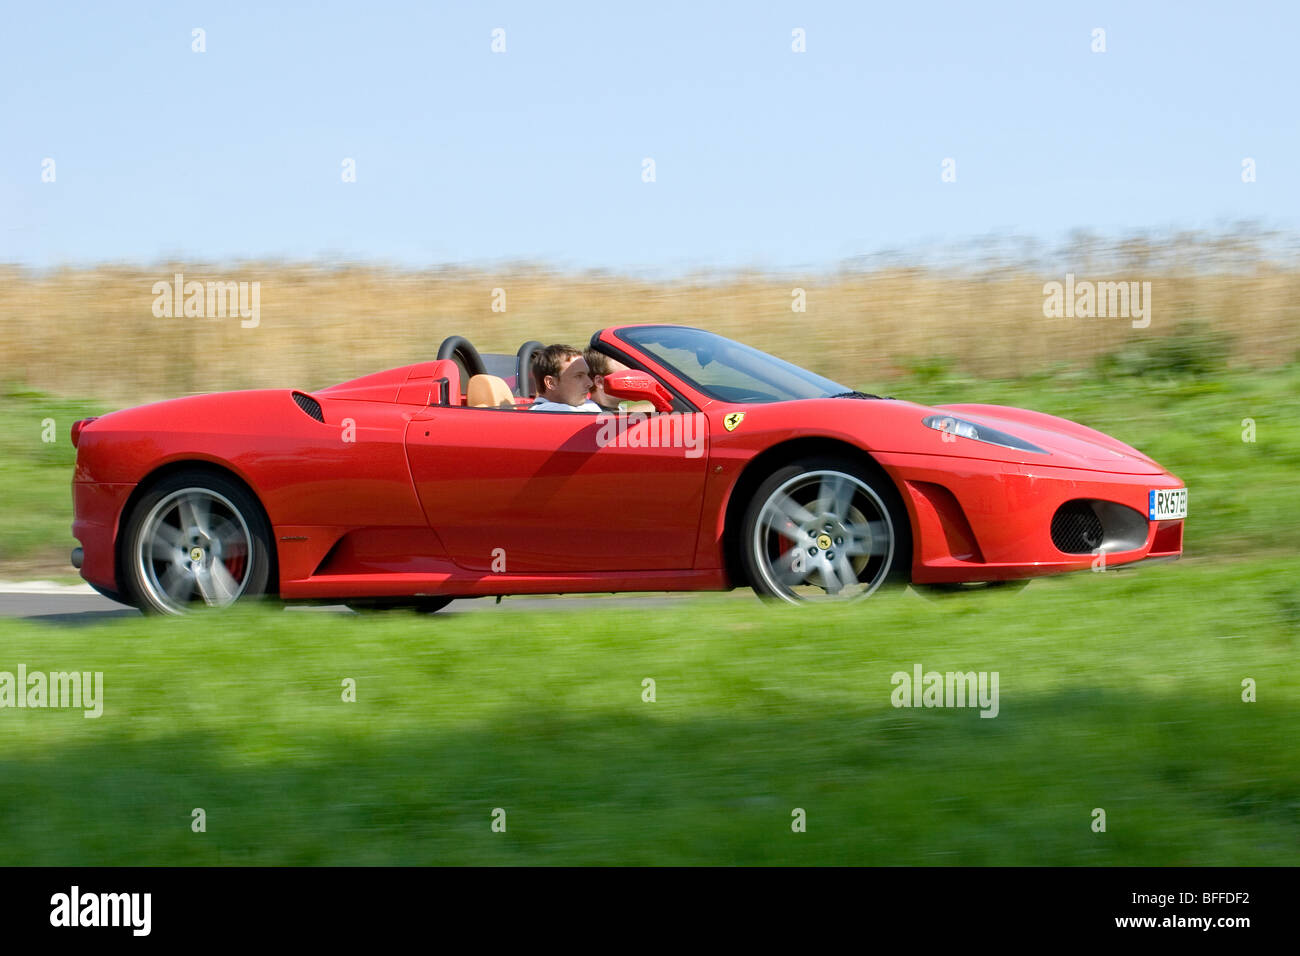 Low angle profile (side view) of a Red Ferrari 360 Spider supercar in motion on the public roads driving fast - Stock Image